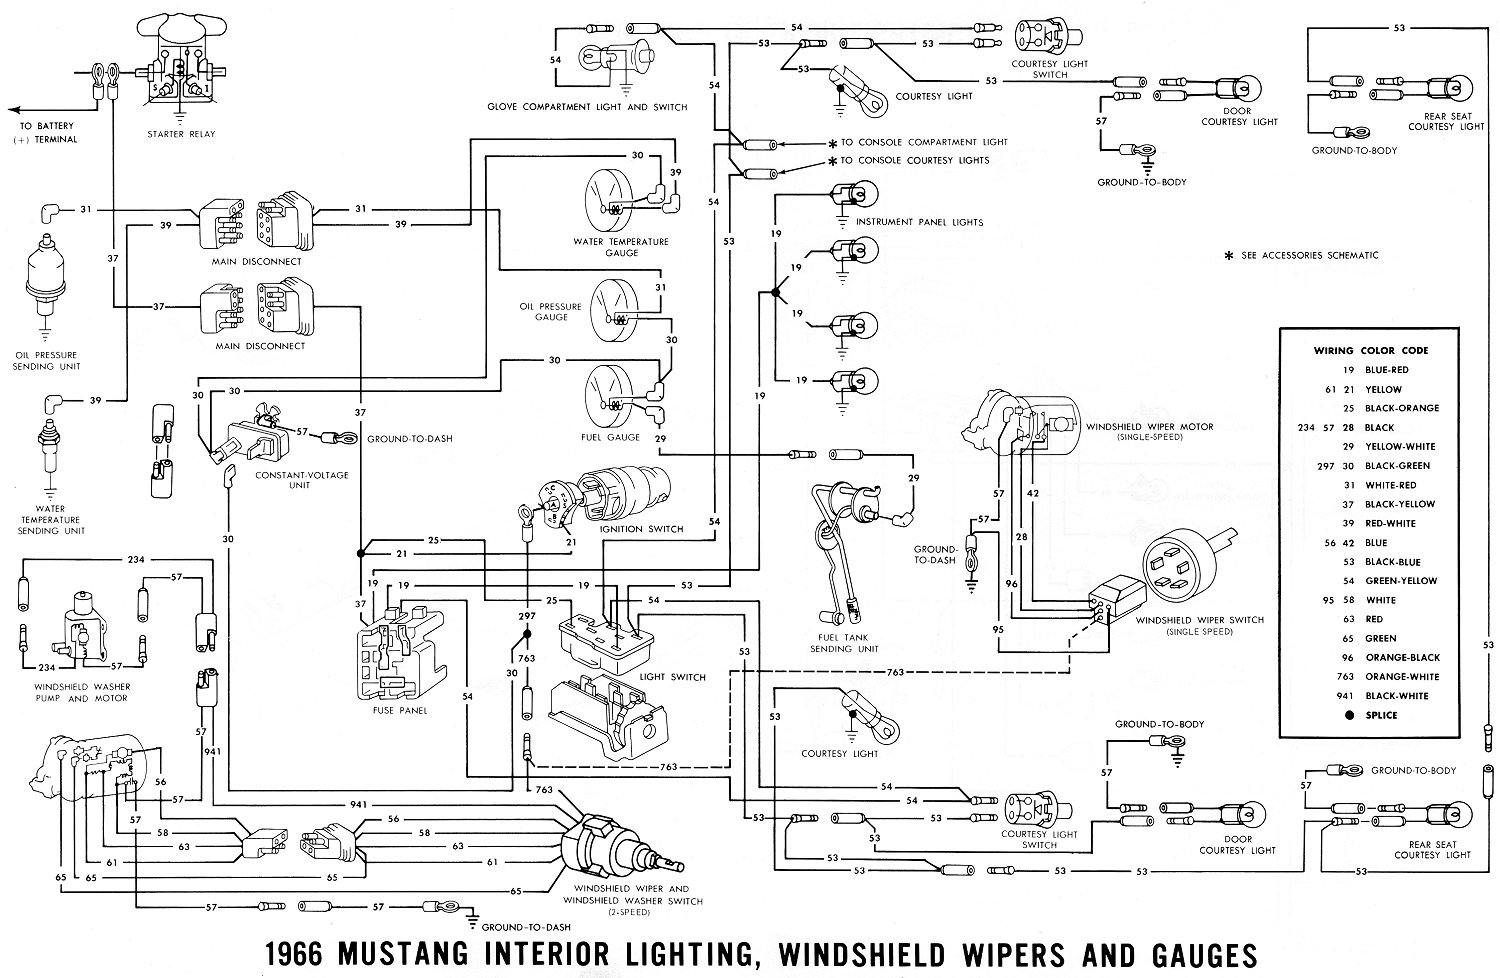 1966 mustang wiring diagrams average joe restoration 66 mustang voltage regulator wiring diagram 1966 mustang voltage regulator wiring diagram #2